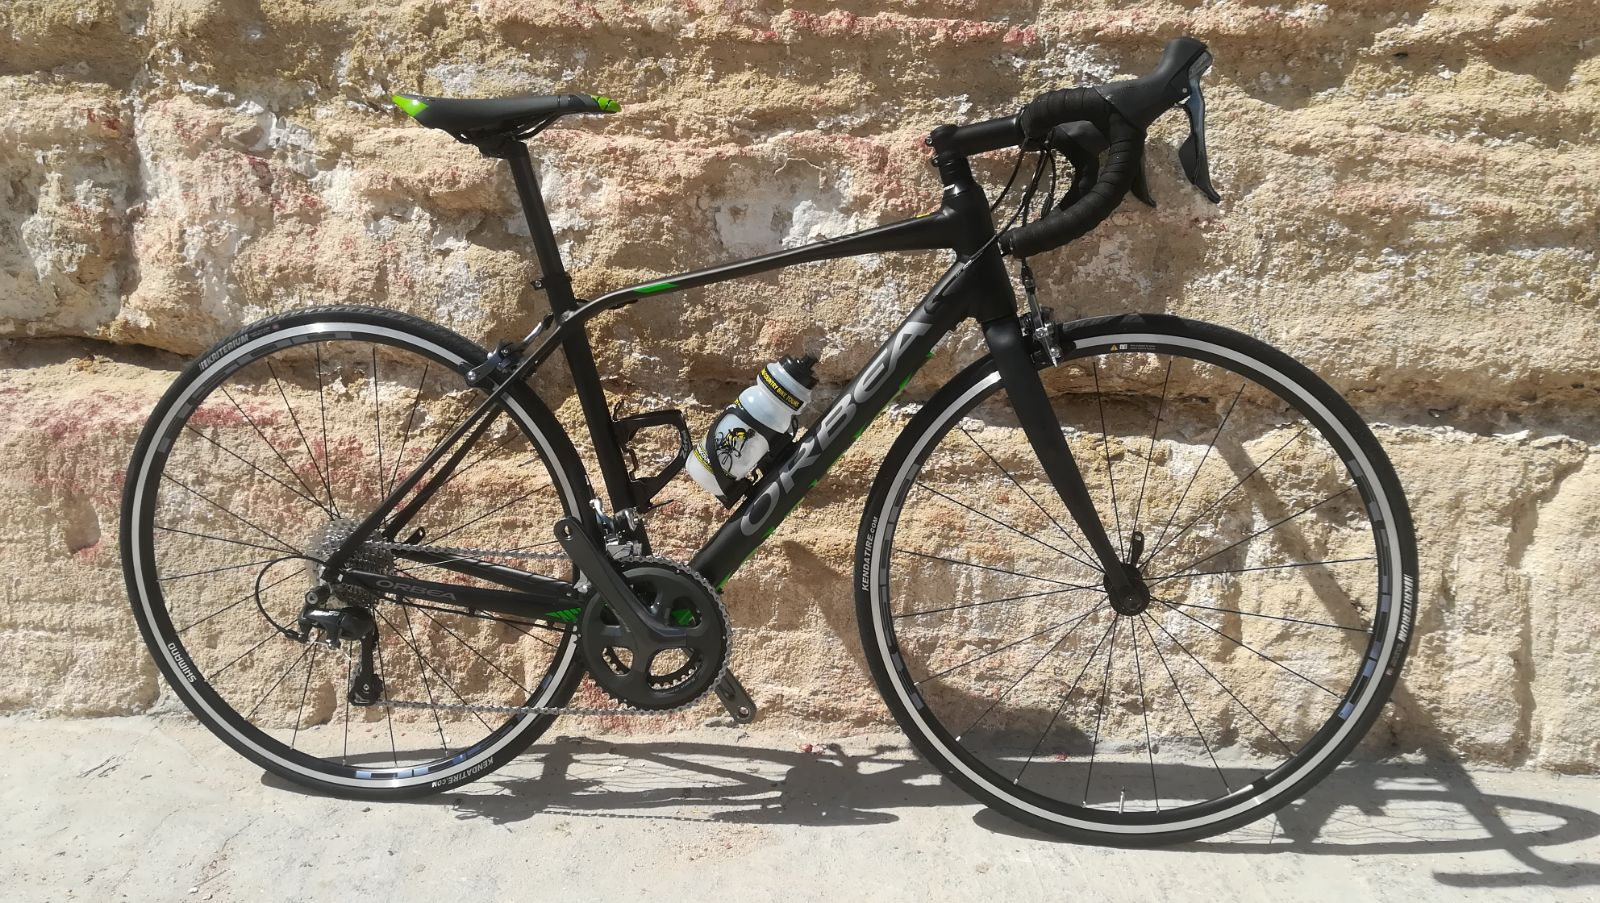 OrbeaAluCarbon_Tiagra_bike_spain (3)